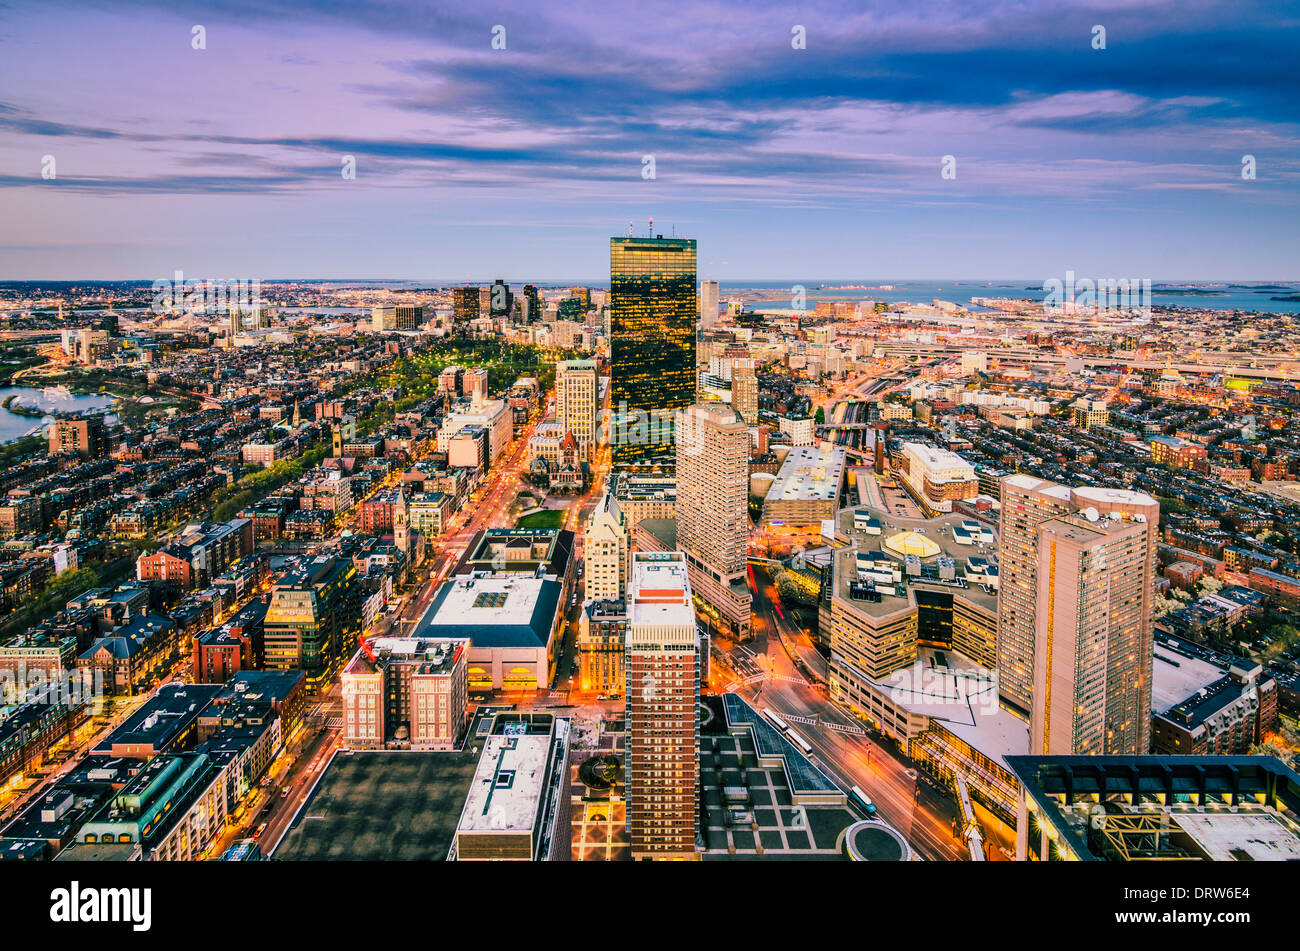 Boston, Massachusetts skyline Photo Stock